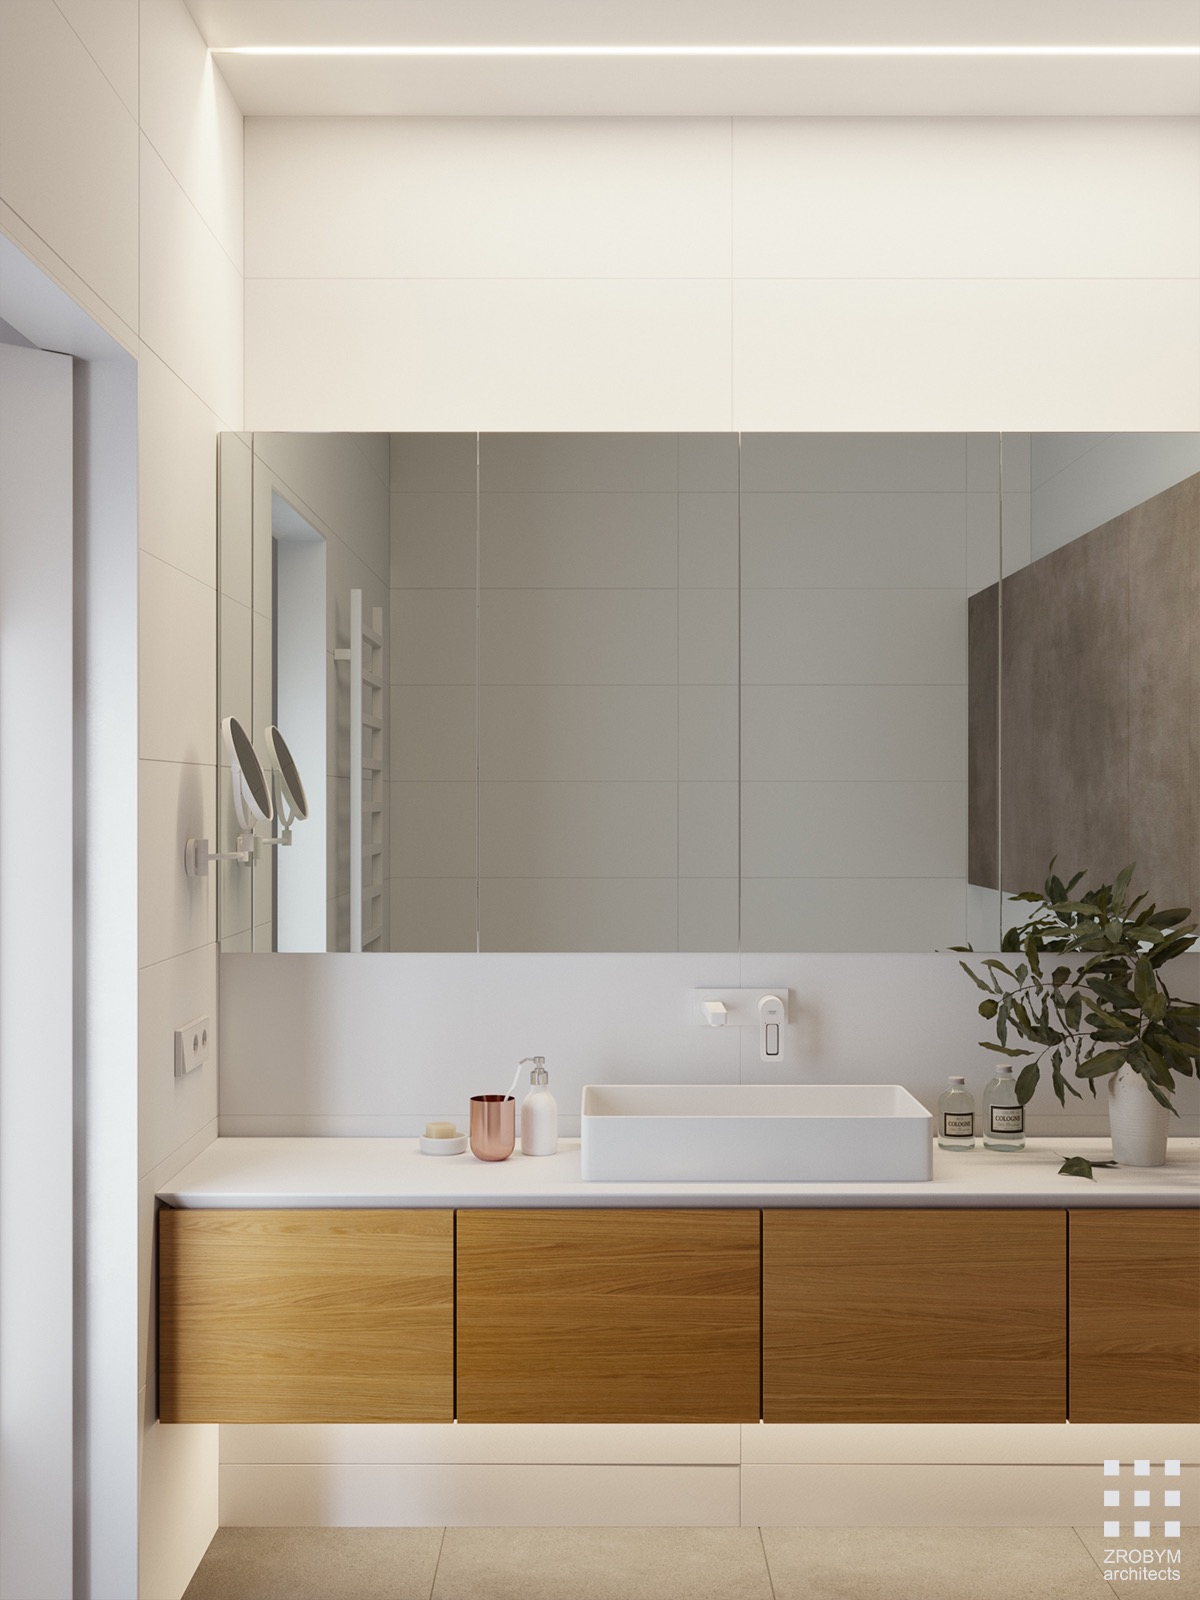 Bathroom Vanity Plans: 40 Modern Bathroom Vanities That Overflow With Style